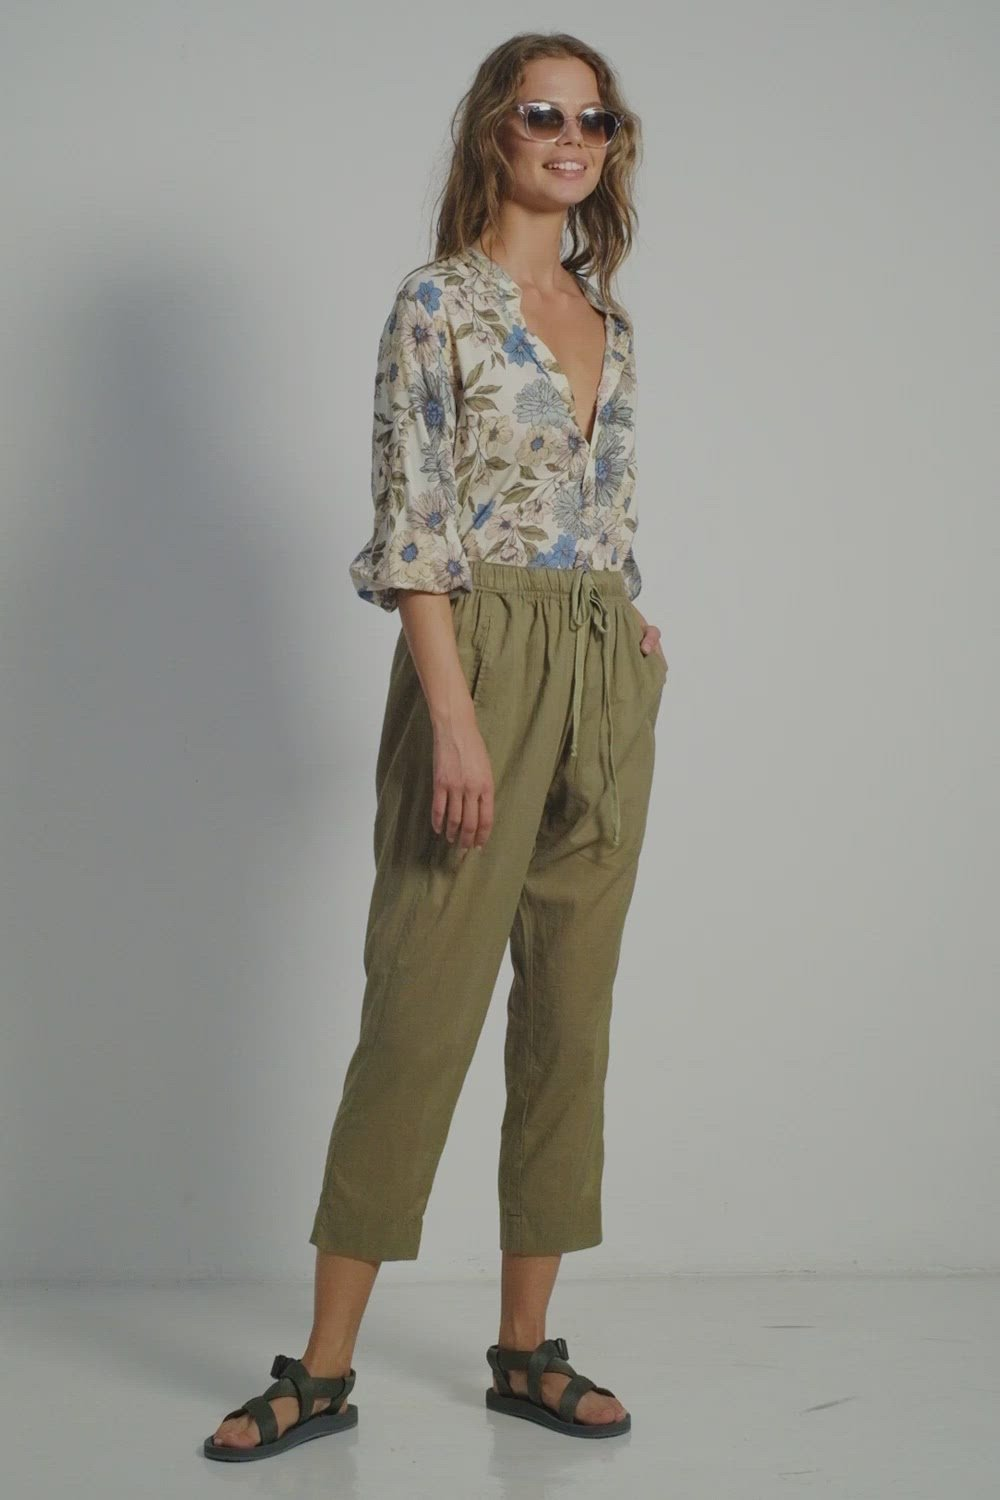 A woman wearing summer look by Lilya: khaki cotton pants and casual floral blouse